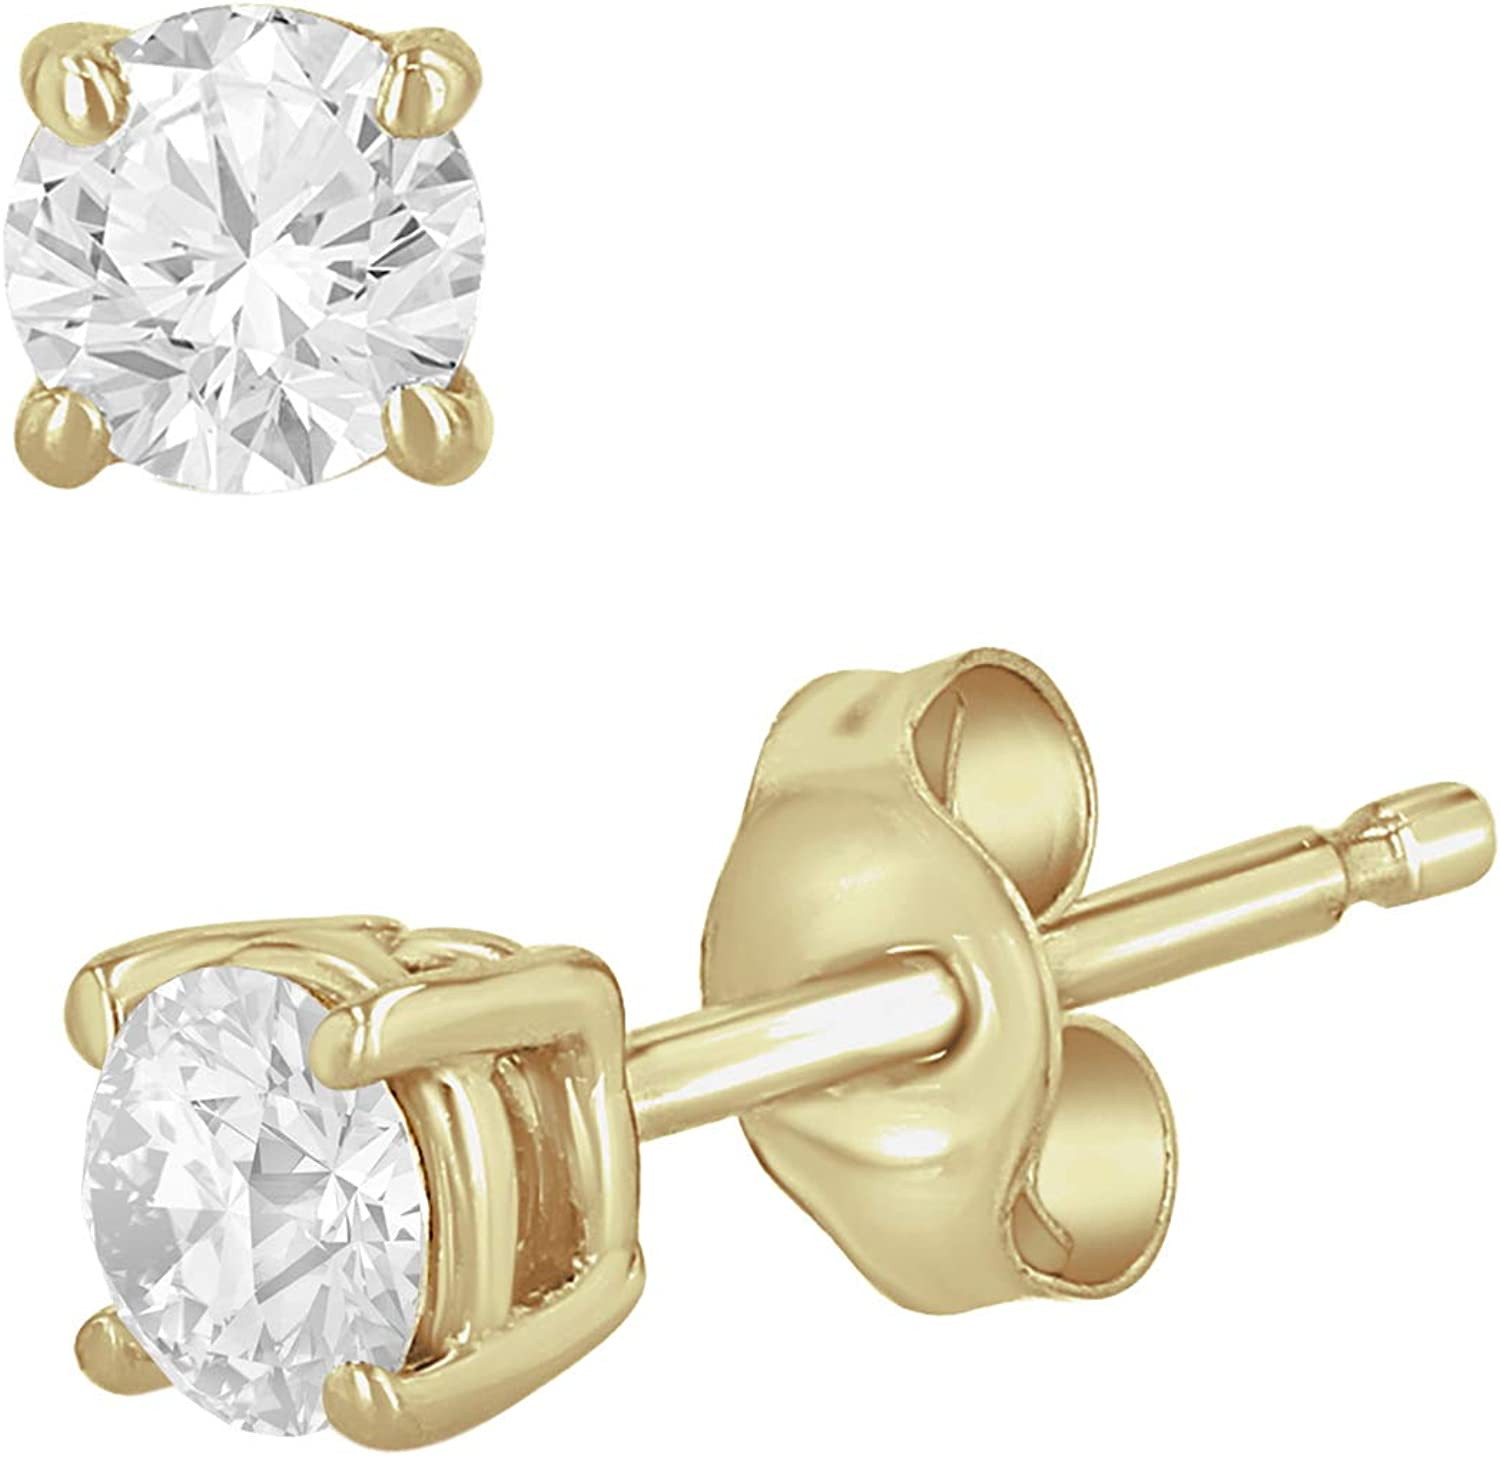 1/5-2 cttw Round Diamond Stud Earrings in 14K White, Yellow, or Rose Gold for Women with Push Backs (1/3cttw and up IGL Certified) - (HI Color, I1 Clarity)